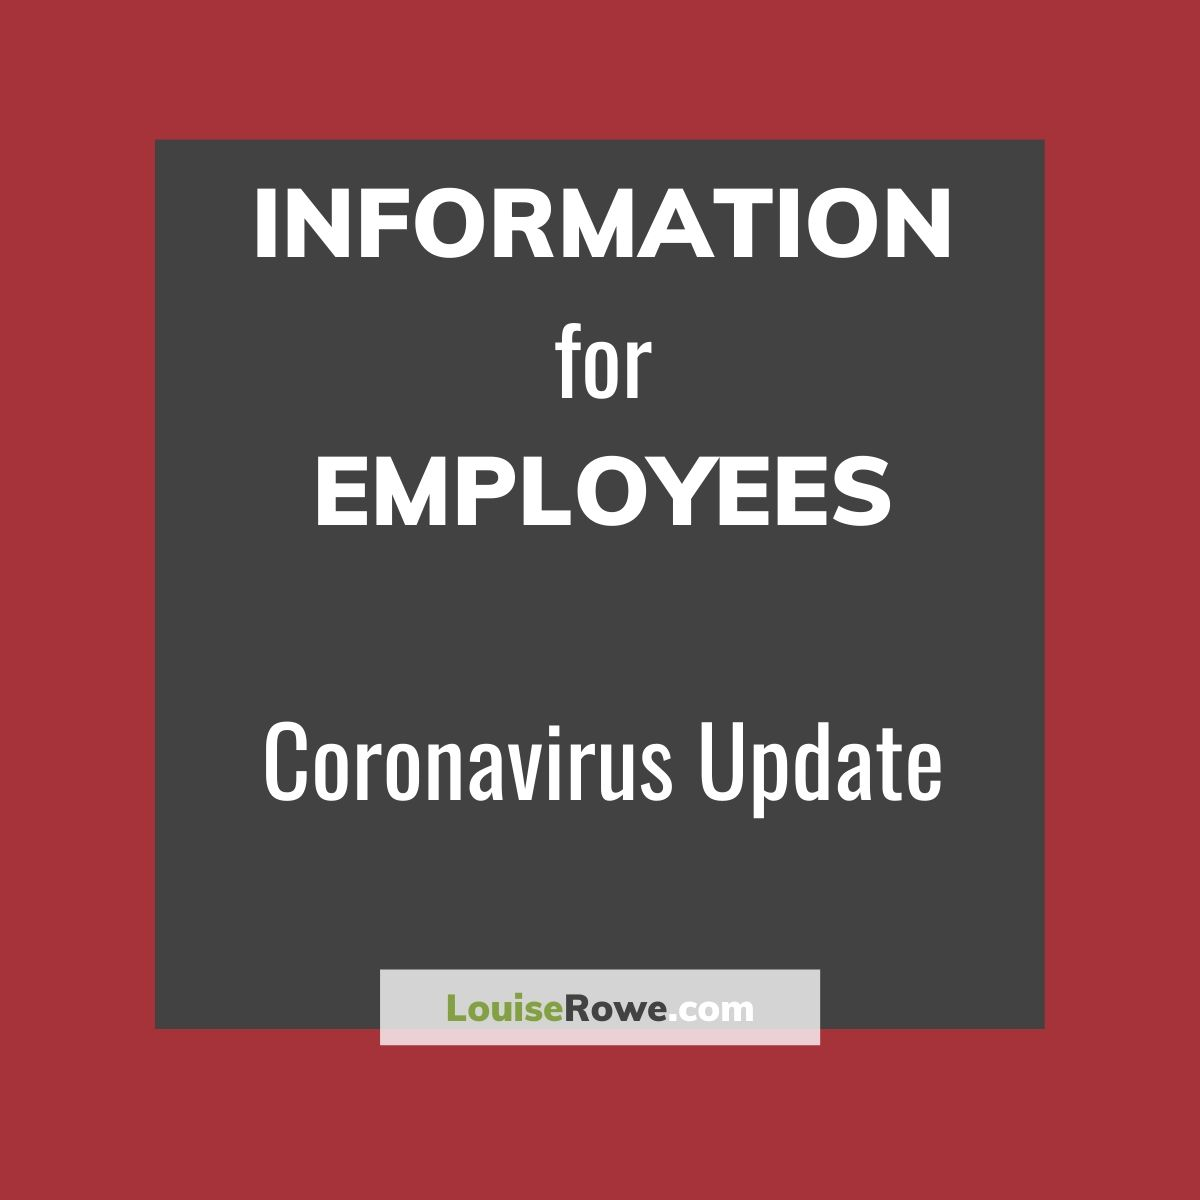 Information for Employees Coronavirus (title). Photo credit © L Rowe 2020